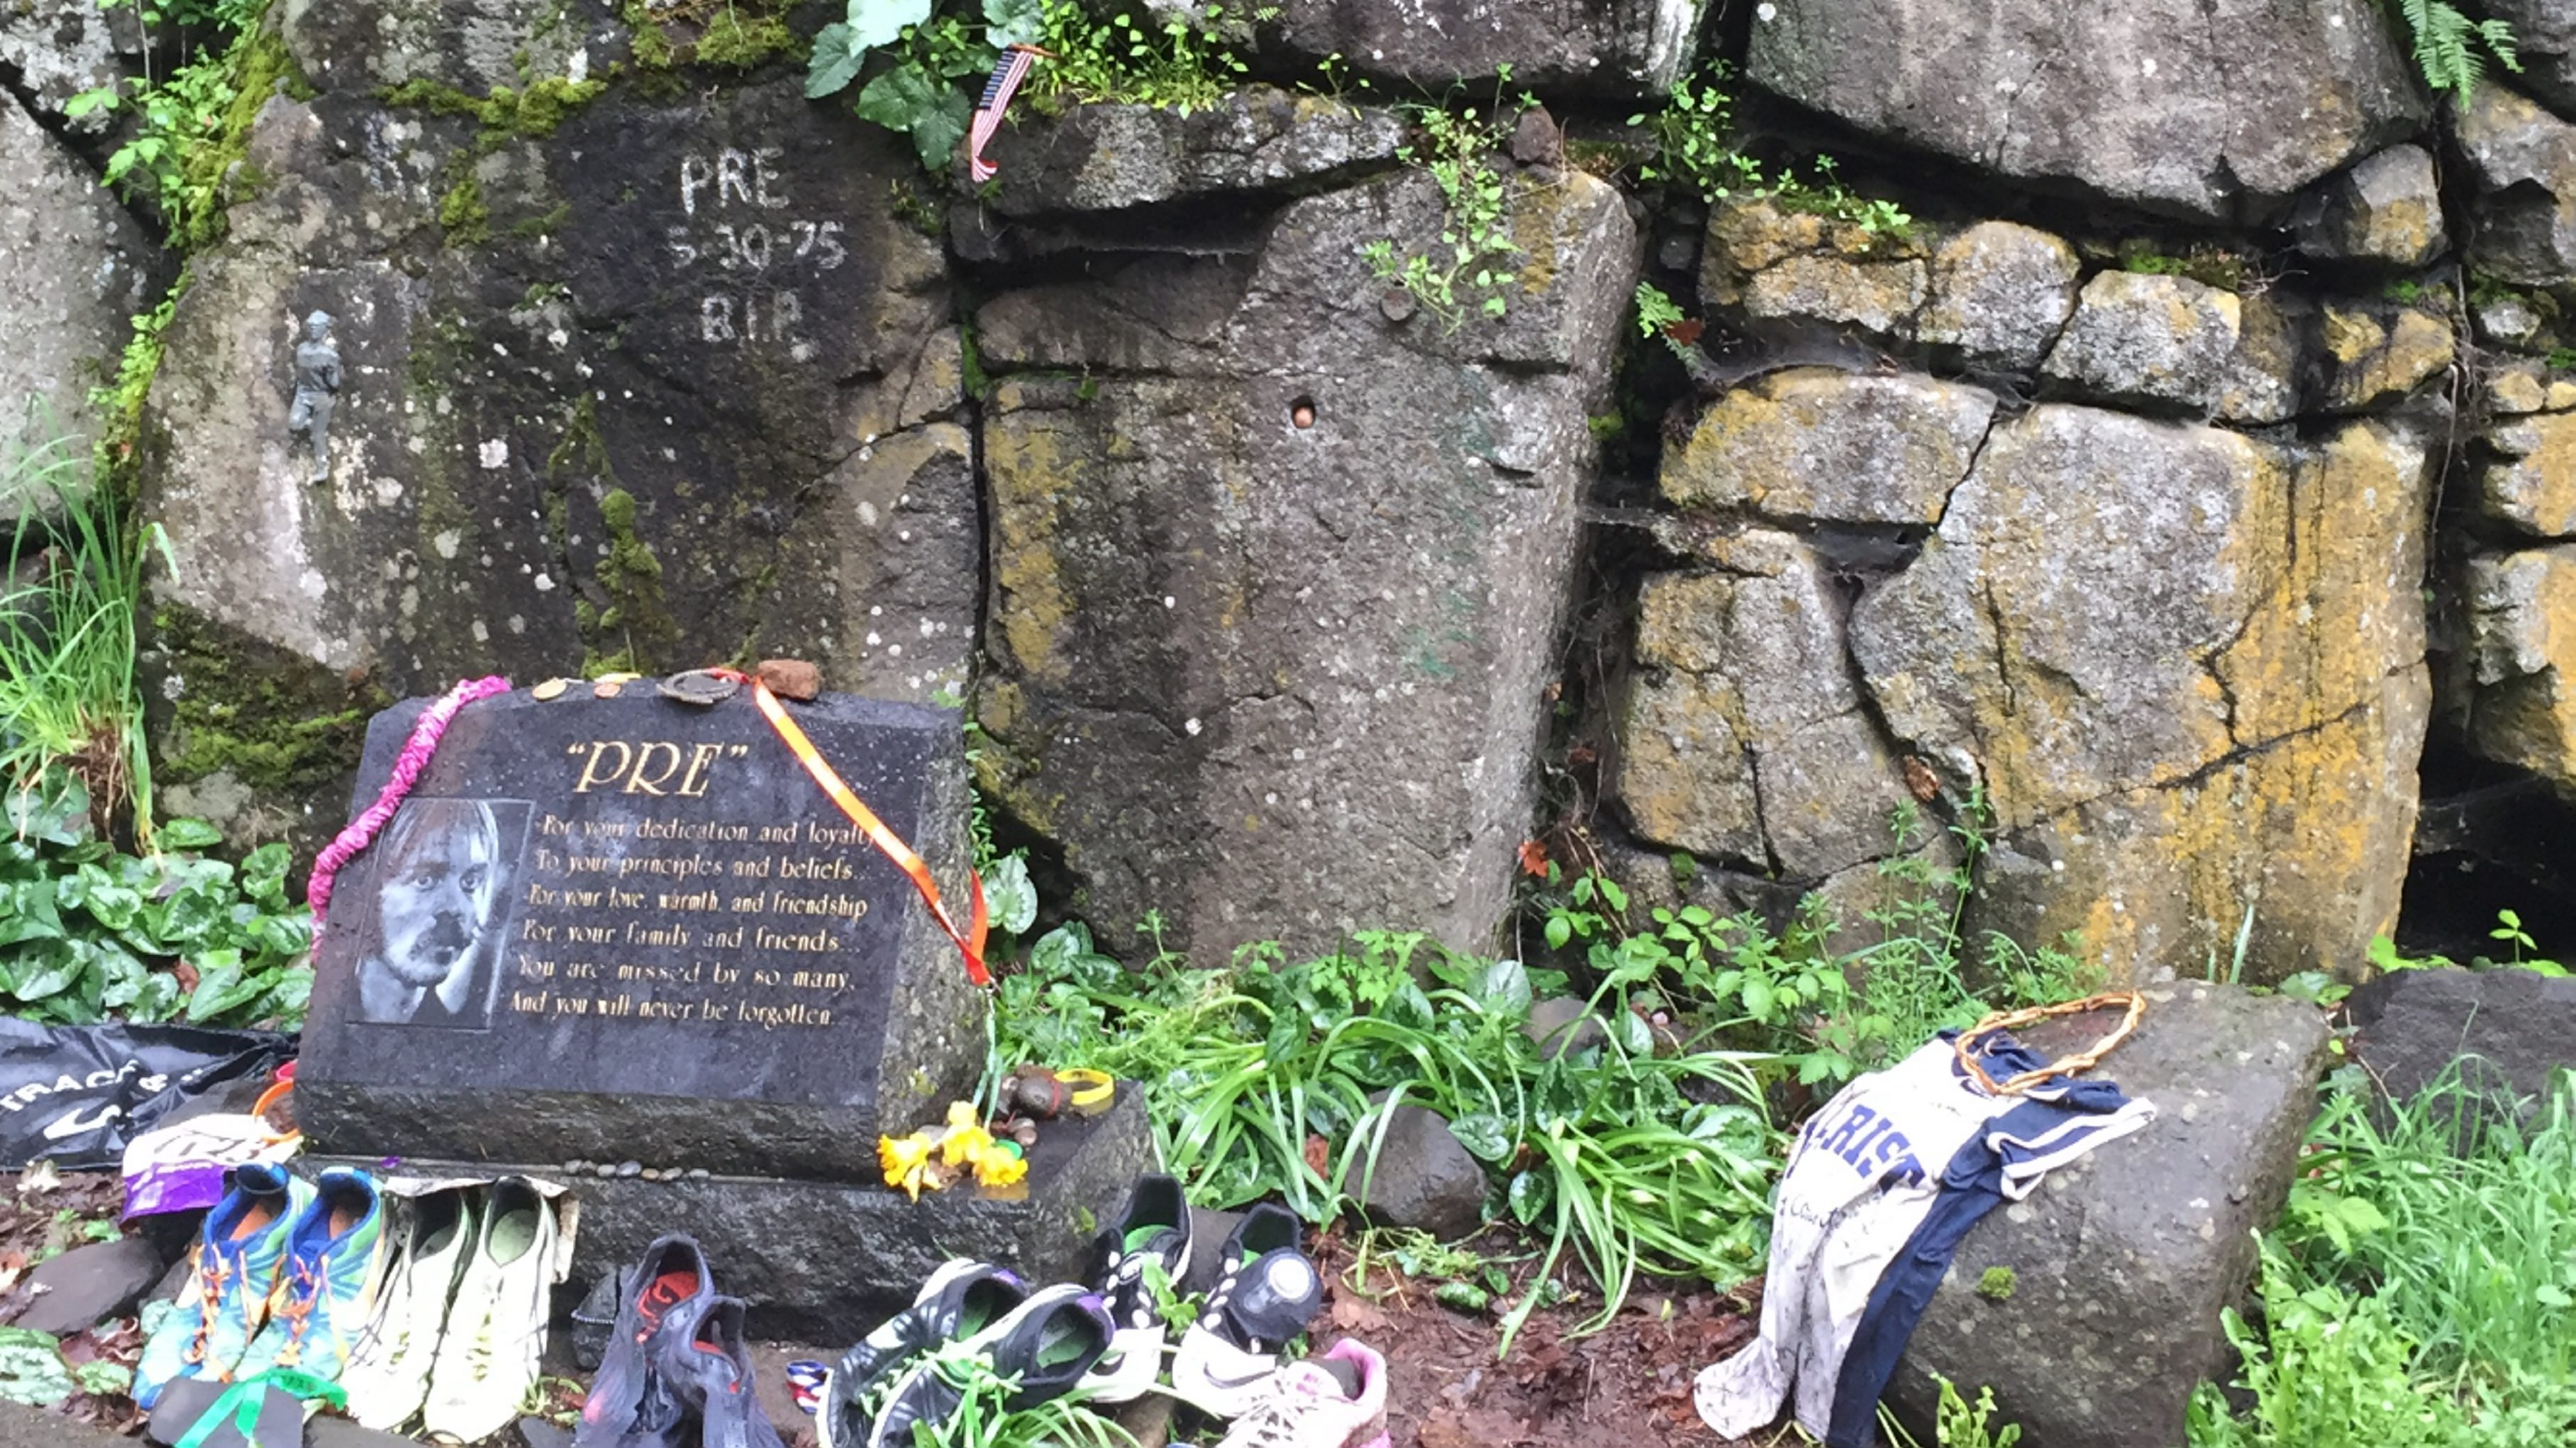 The scene of Steve Prefontaine's fatal car accident in Eugene, Ore., remains a shrine to runners. They have left behind sneakers, race bibs, medals and messages to honor him at Pre's Rock.